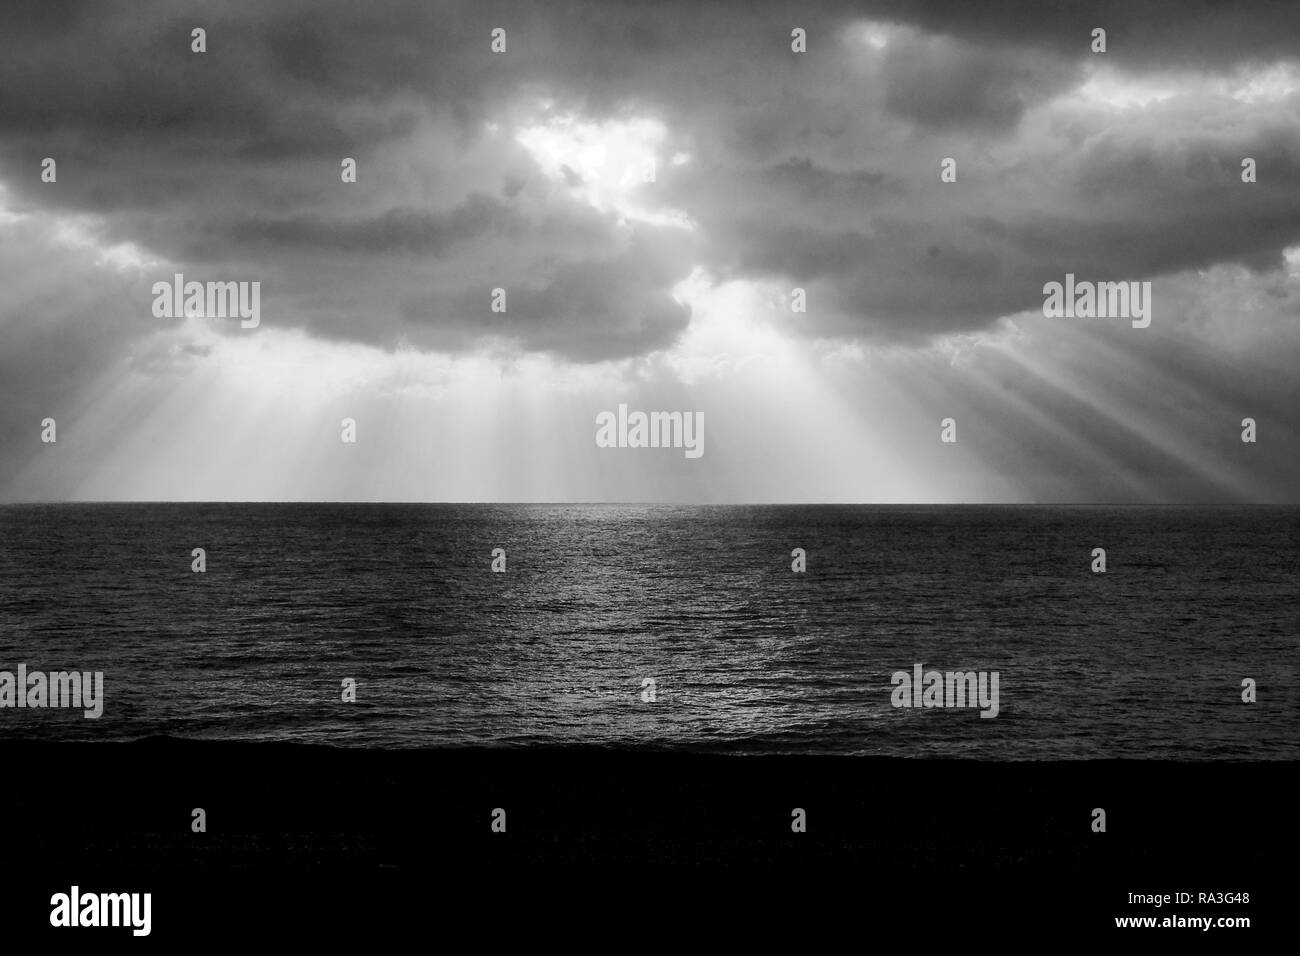 black and white photograph of lots of long beams of sunlight shining through dramatic clouds casting long rays of light onto the sea making the sea gl - Stock Image